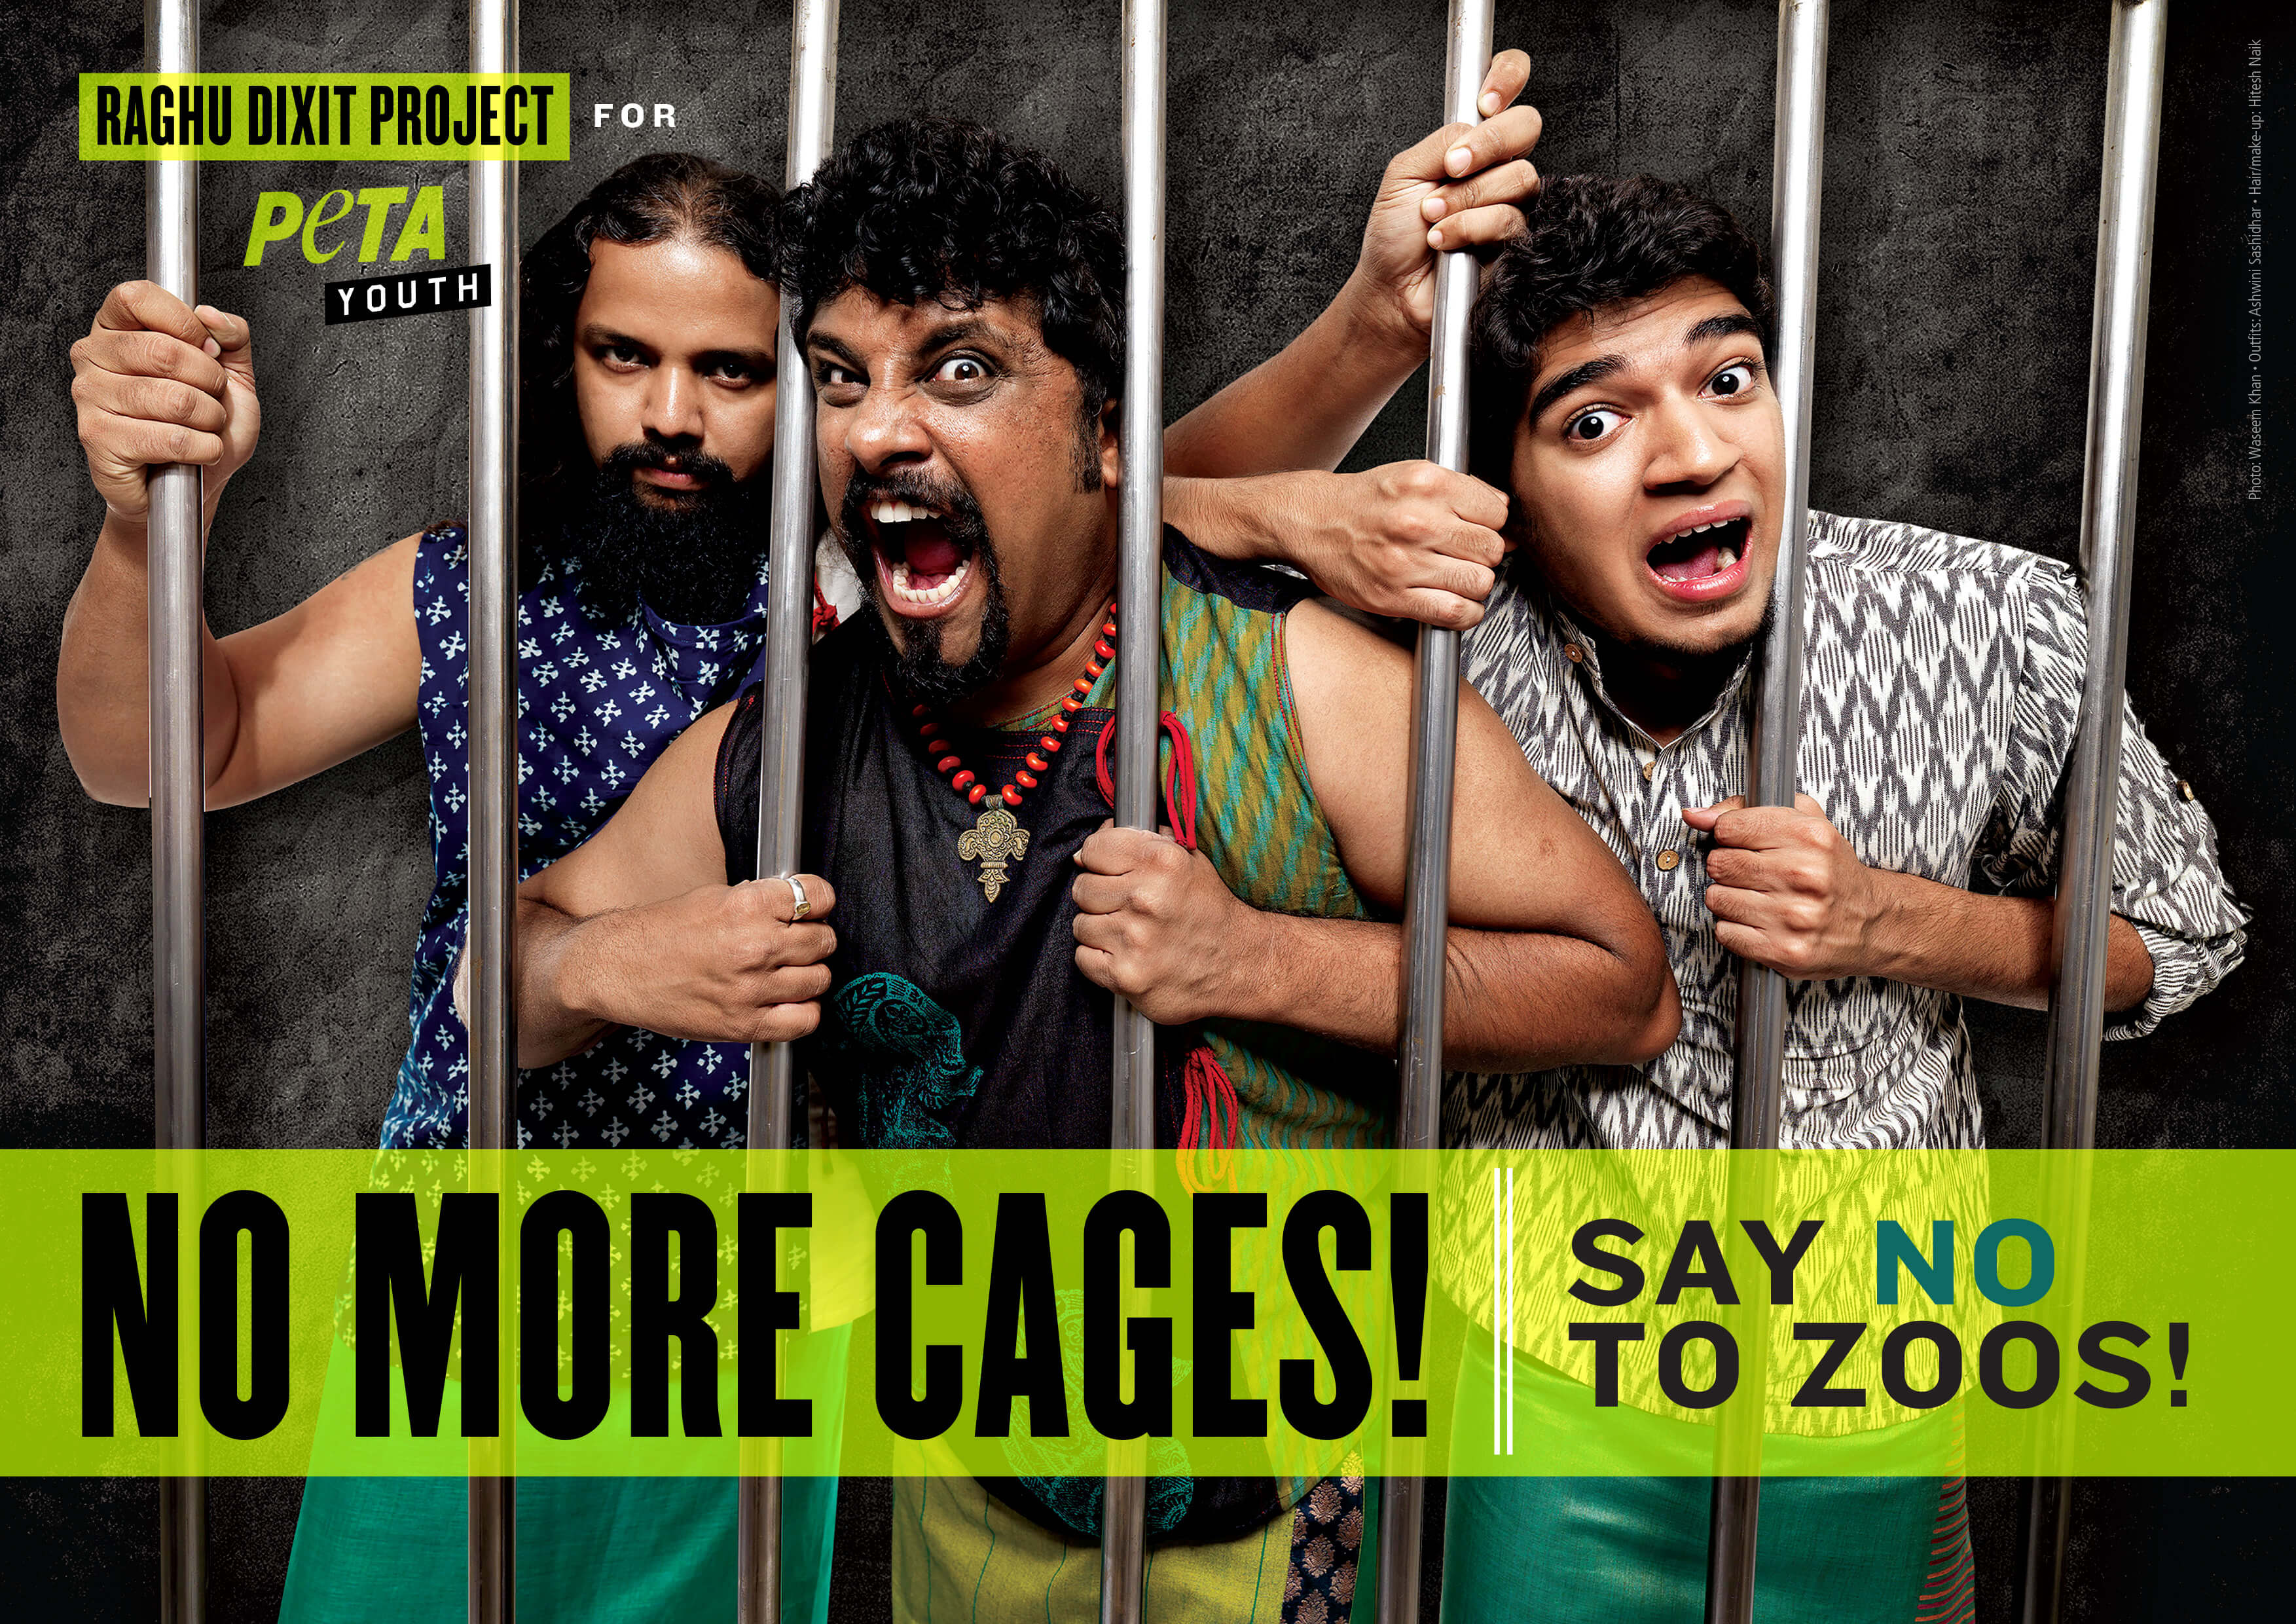 Raghu Dixit Project: Caged and Enraged About Zoos